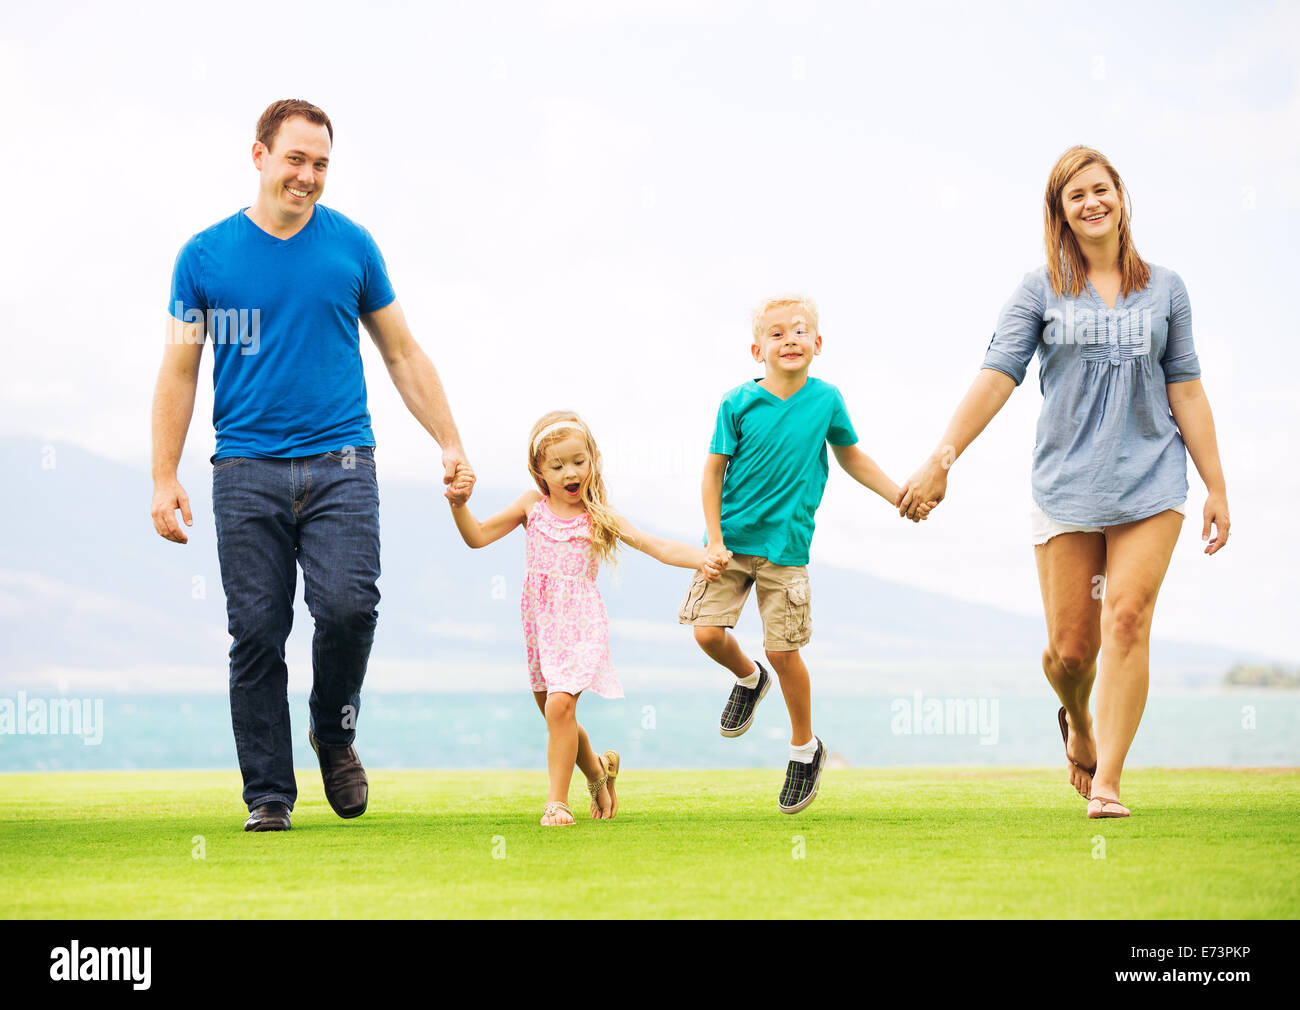 Happy Family Outside on Grass - Stock Image